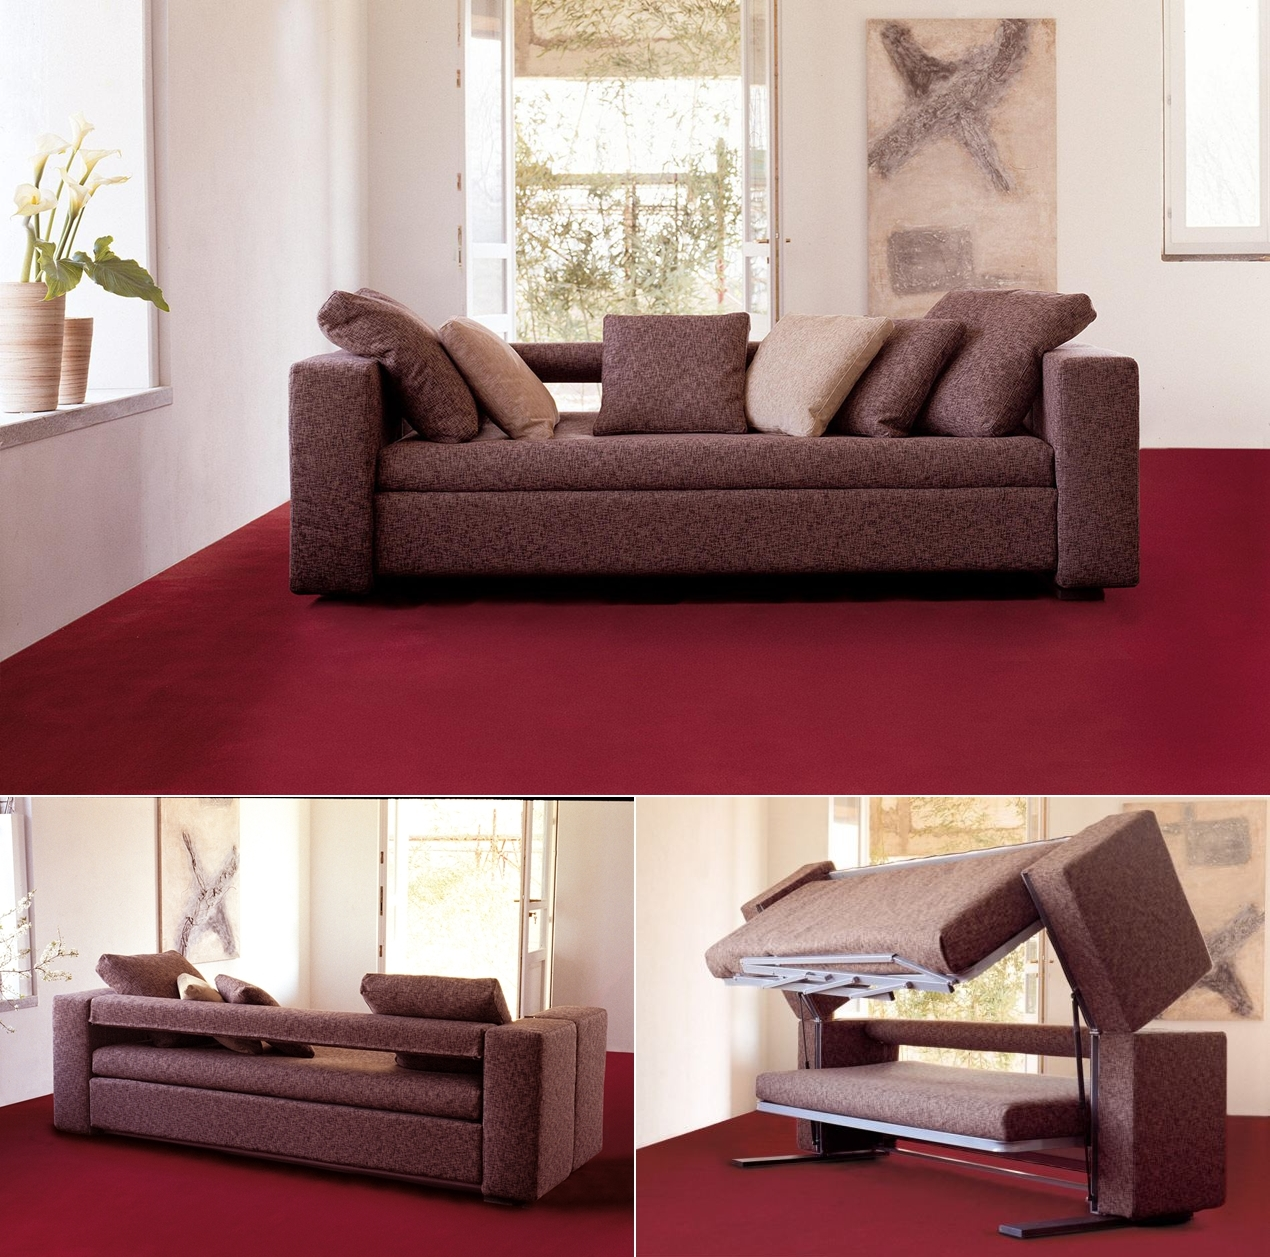 Couch Turns Into A Bed. AD Awesome Beds In Tiny Spaces 05